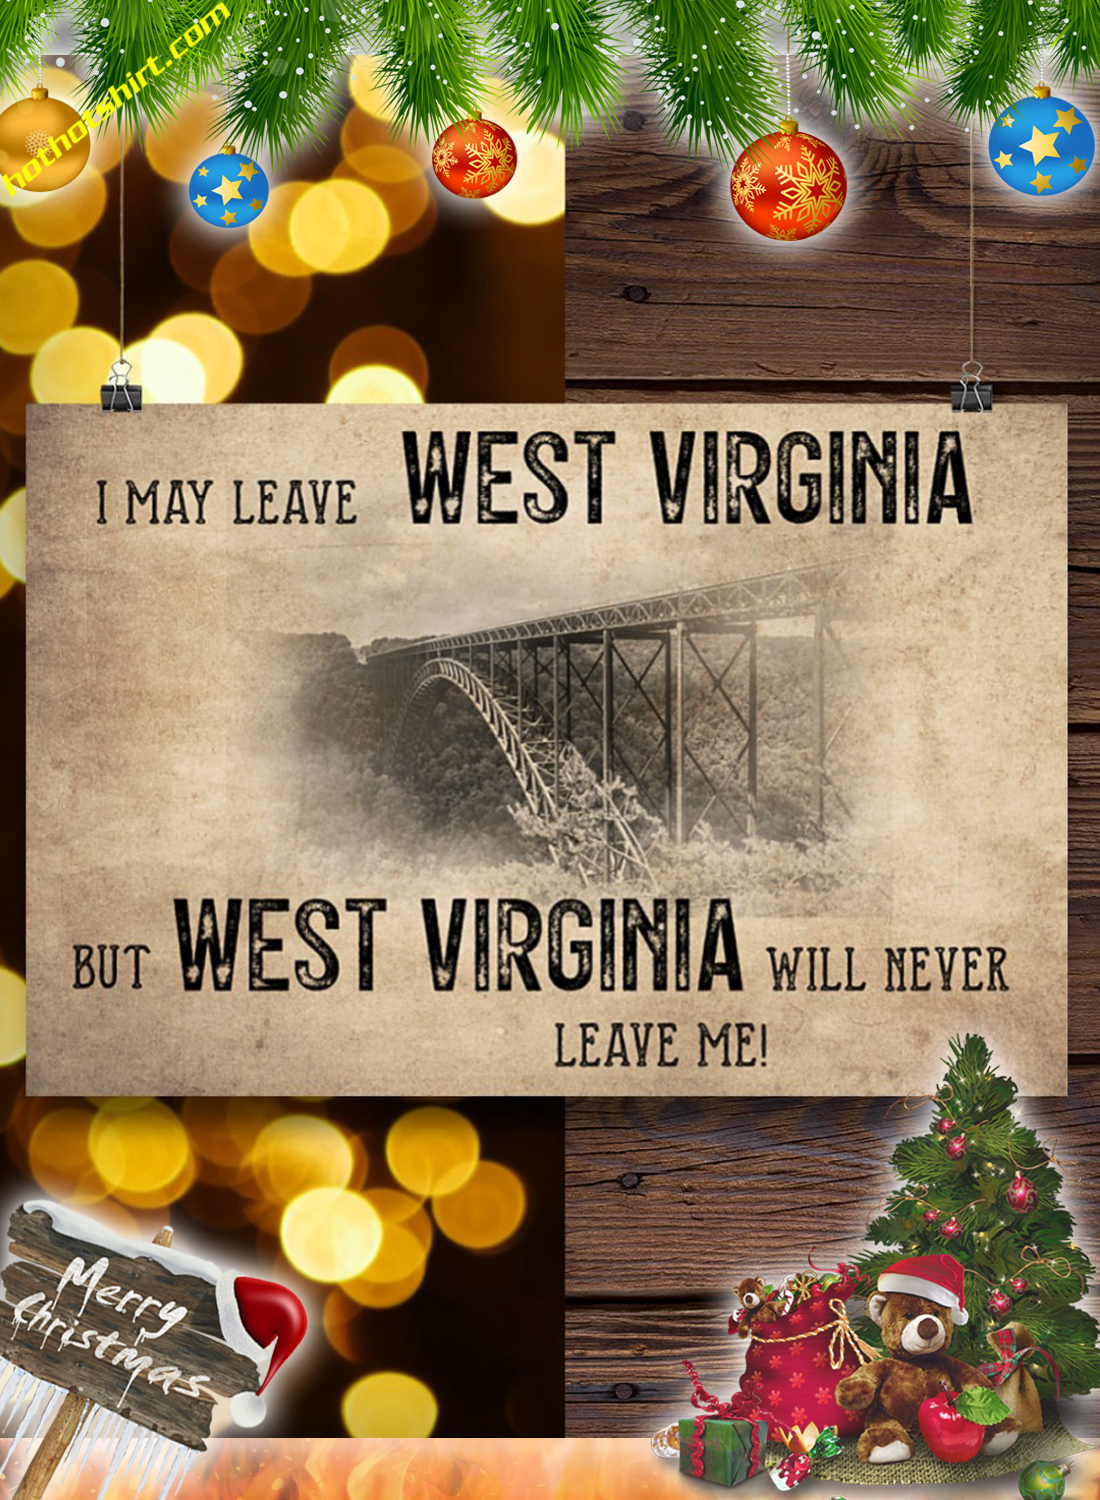 I may leave west virginia but west virginia will never leave me poster 3